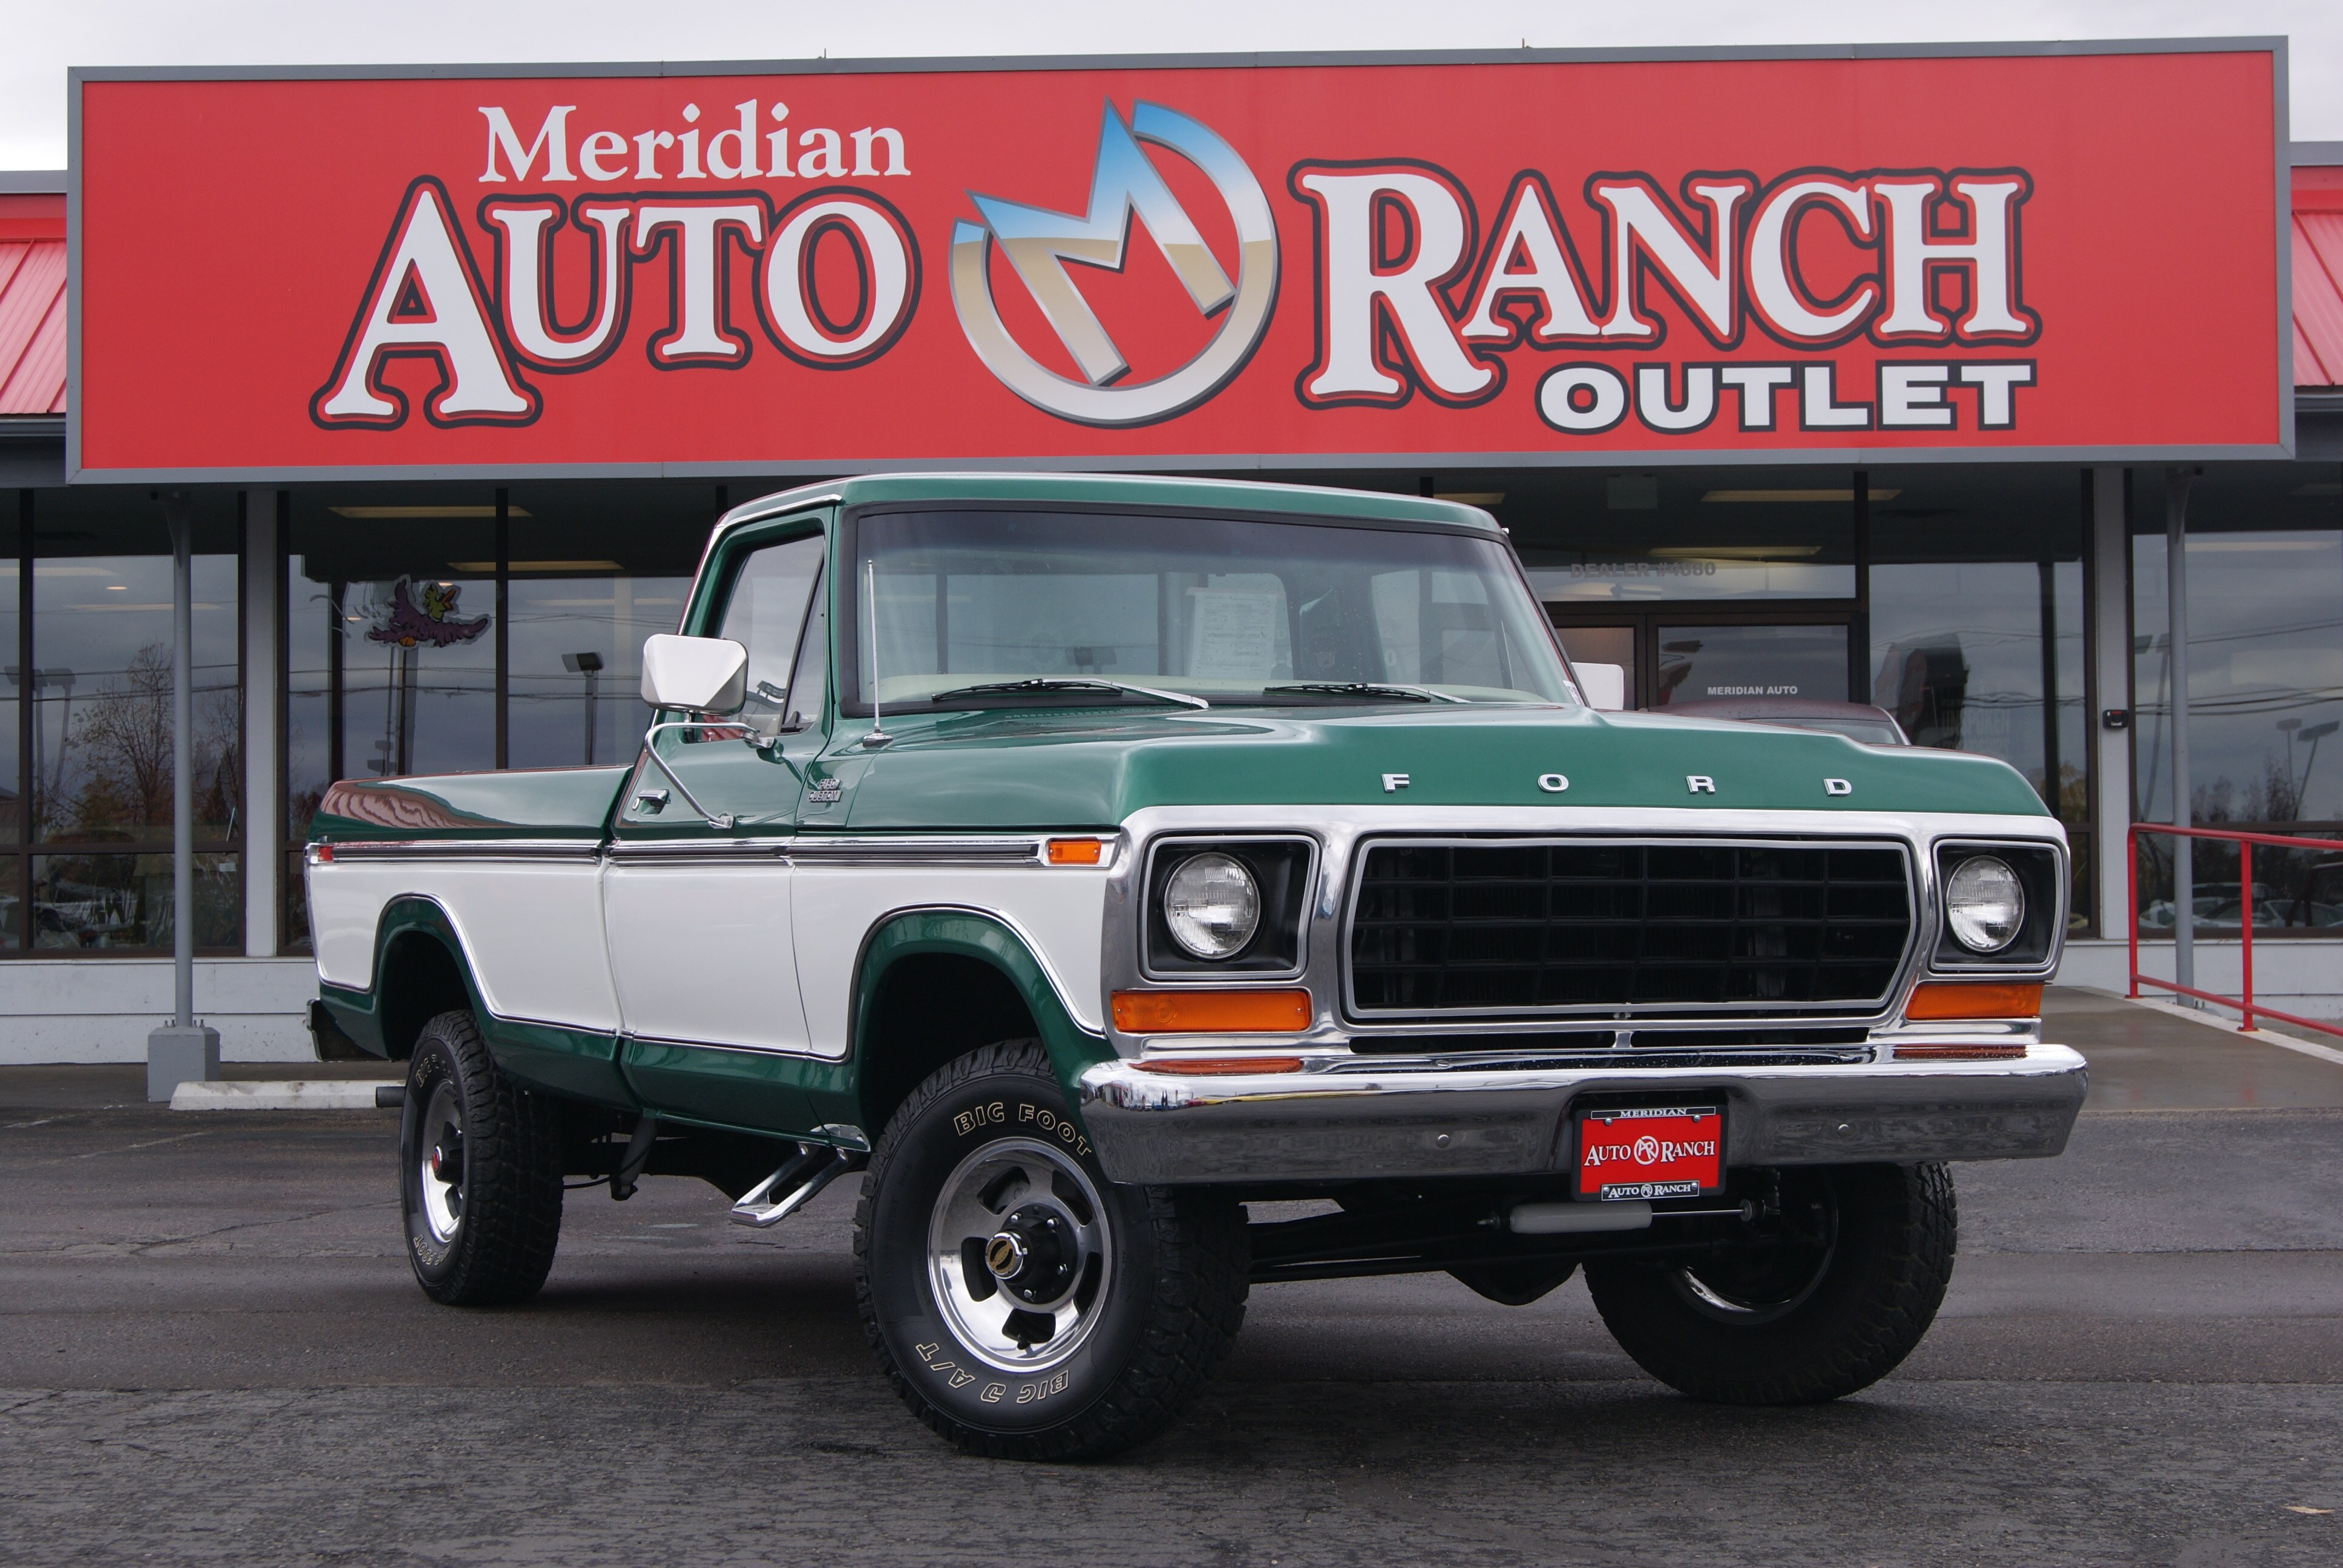 Used 1978 Ford F-150 for sale near Boise